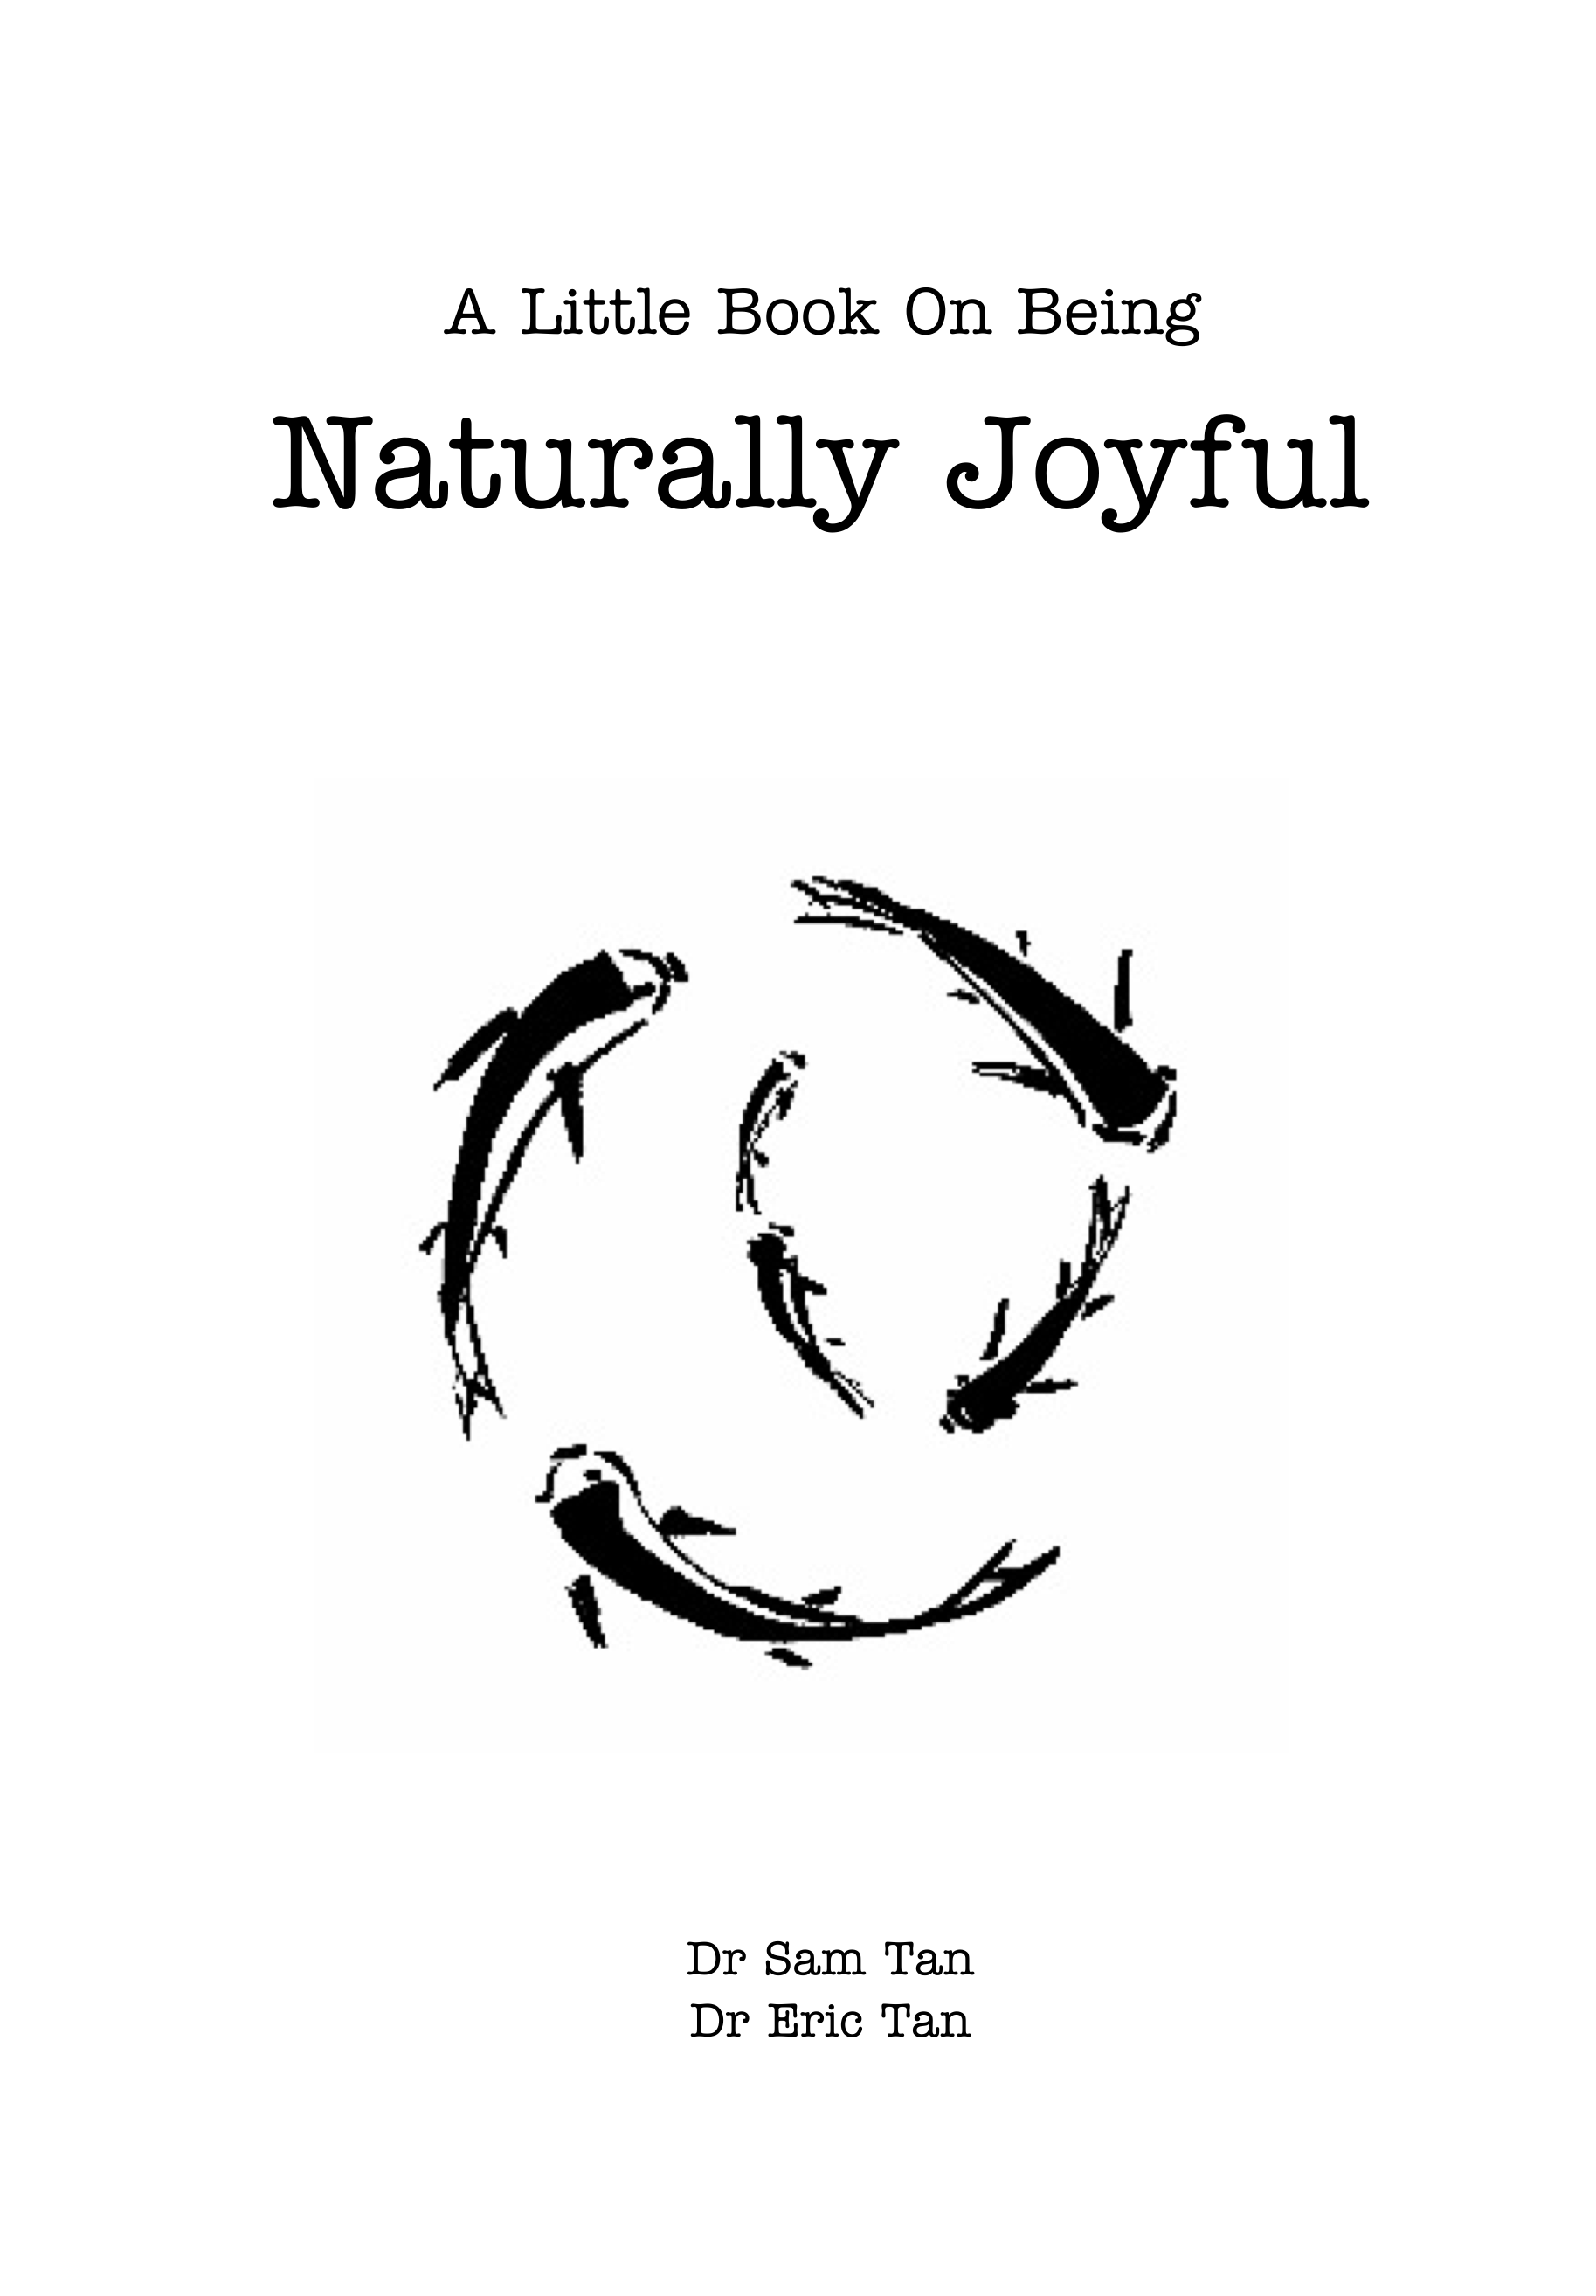 naturally joyful cover2.png